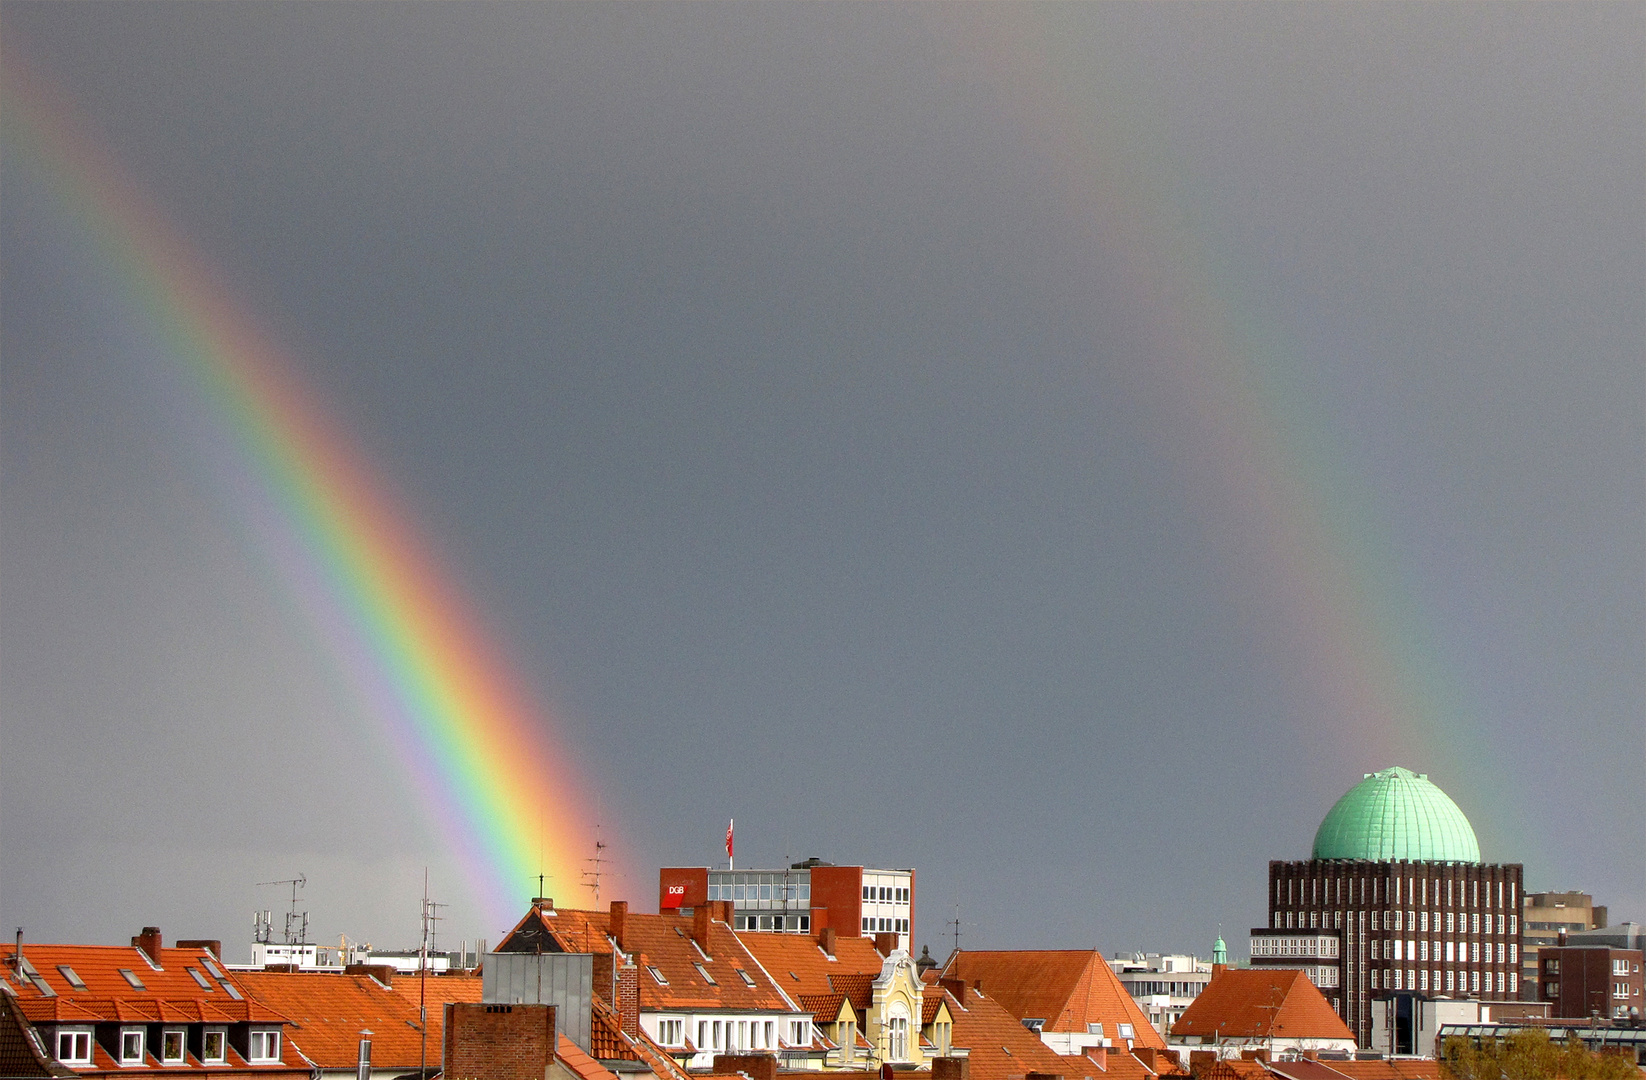 Ostersonntag in Hannover, Aprilwetter